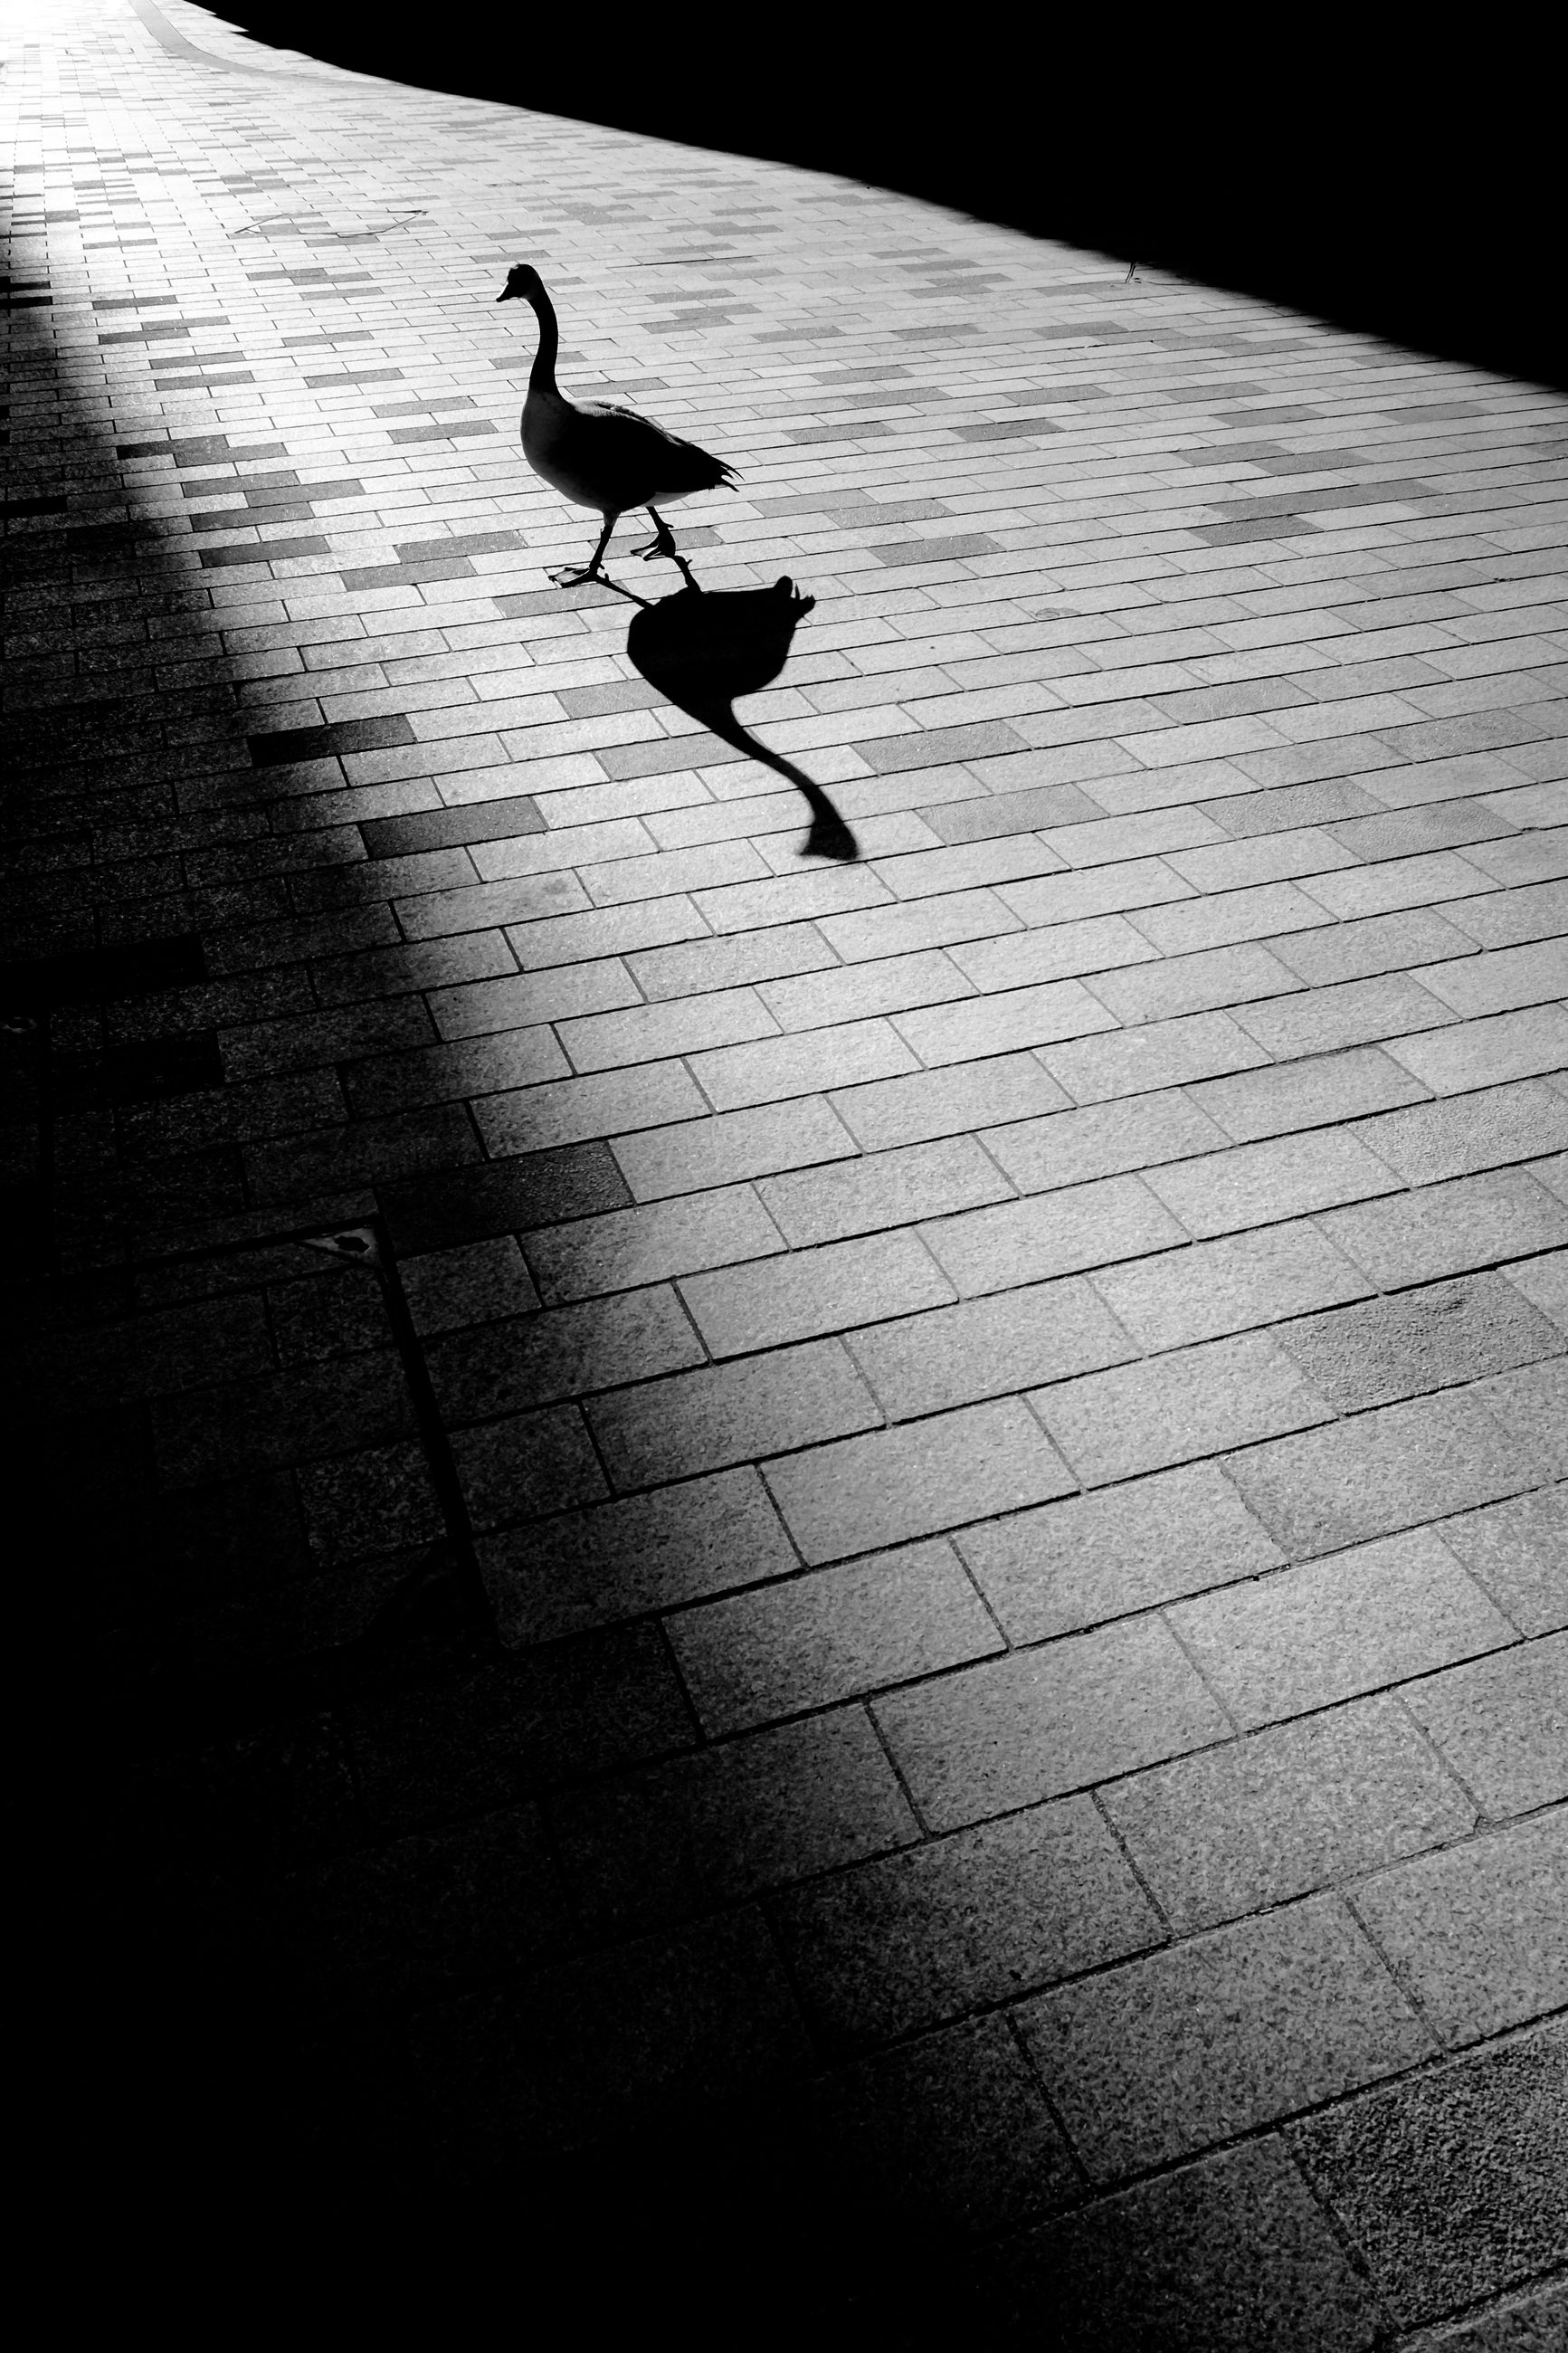 vertebrate, animal themes, bird, animal, animal wildlife, animals in the wild, one animal, no people, day, nature, flying, spread wings, sunlight, outdoors, high angle view, silhouette, footpath, shadow, water, seagull, paving stone